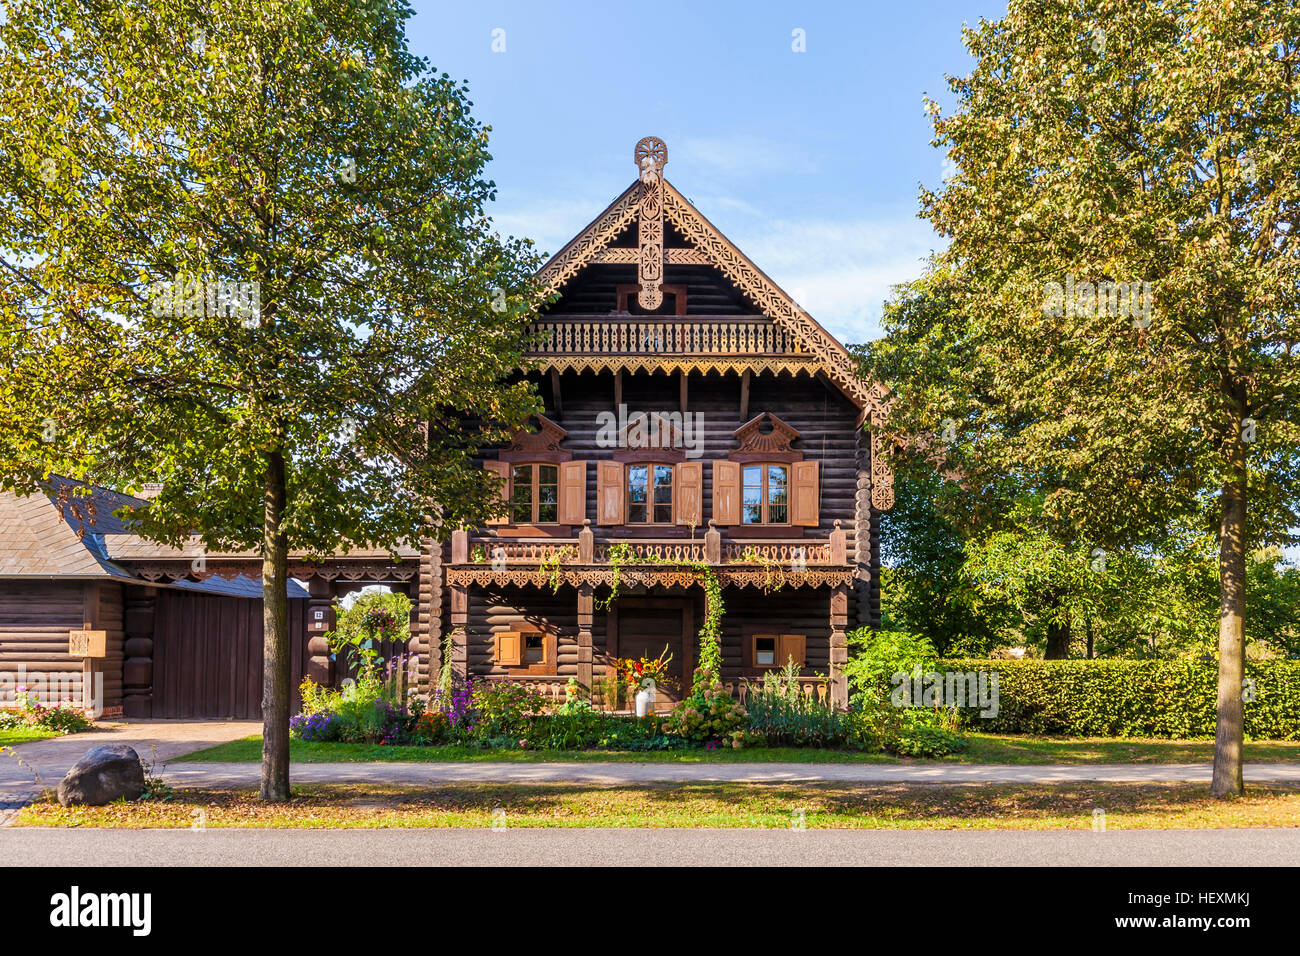 Germany, Potsdam, typical frame house at Alexandrowka - Stock Image